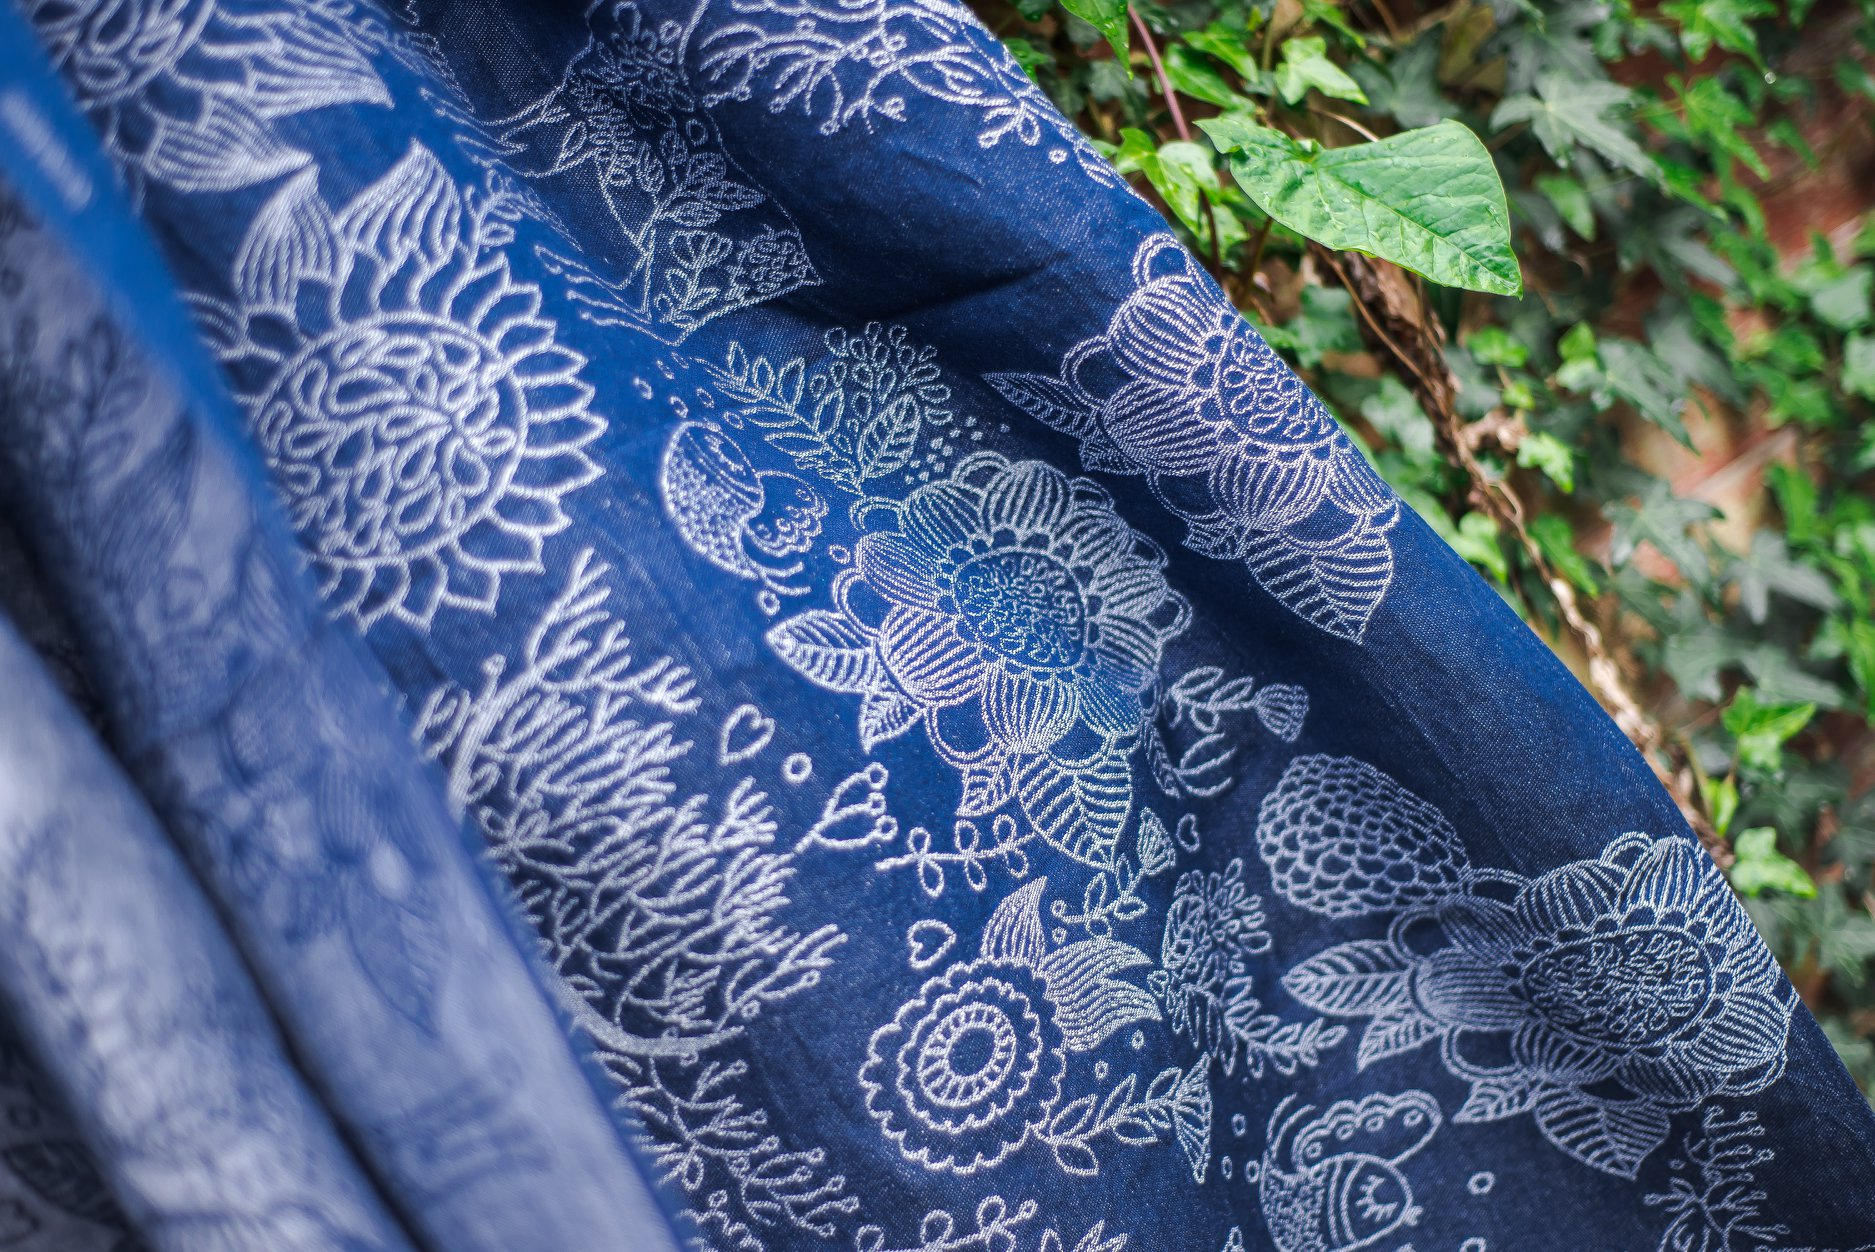 Tragetuch Didymos Magic Forest Full Moon Hemp (Hanf) Image